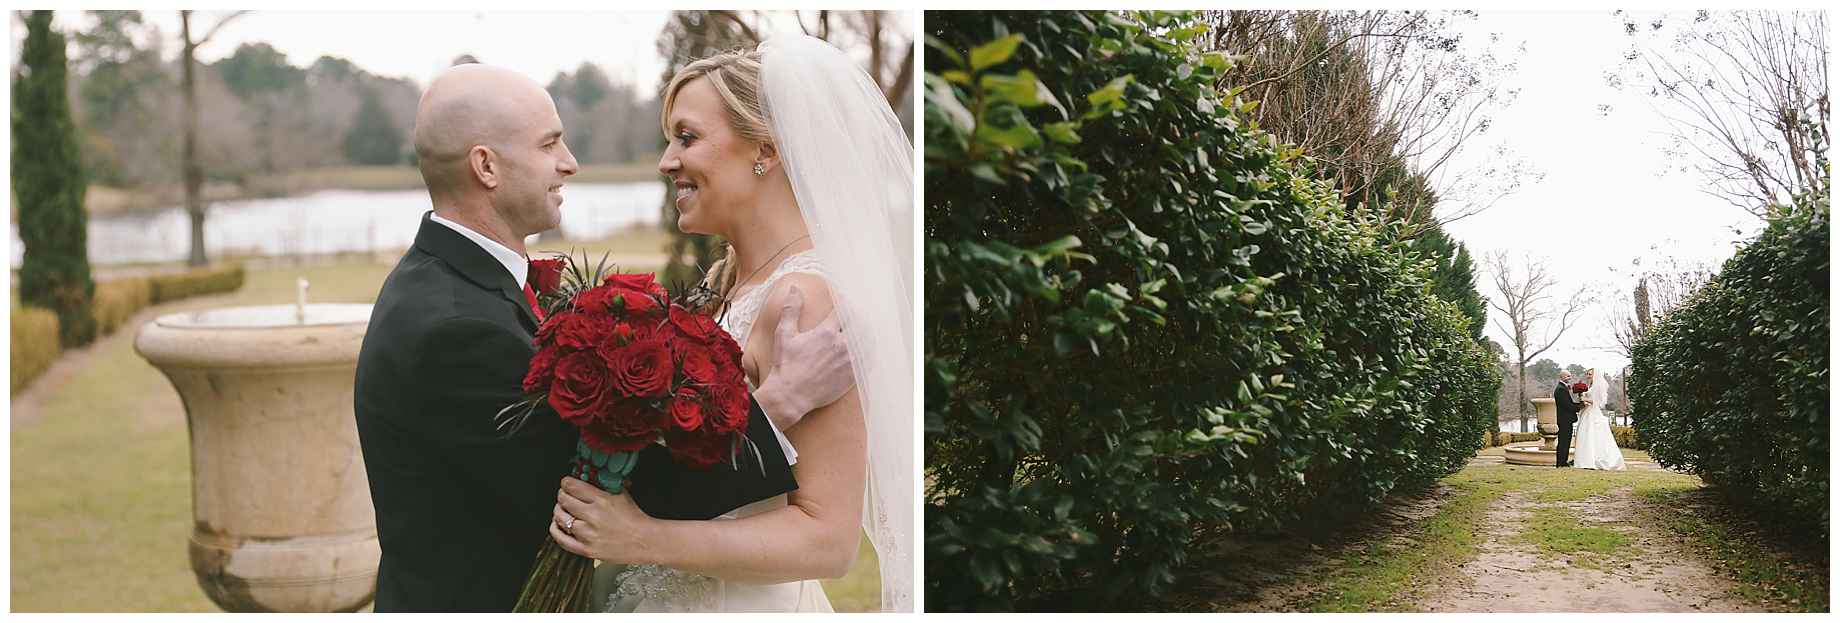 elmwood-gardens-wedding-photos-07